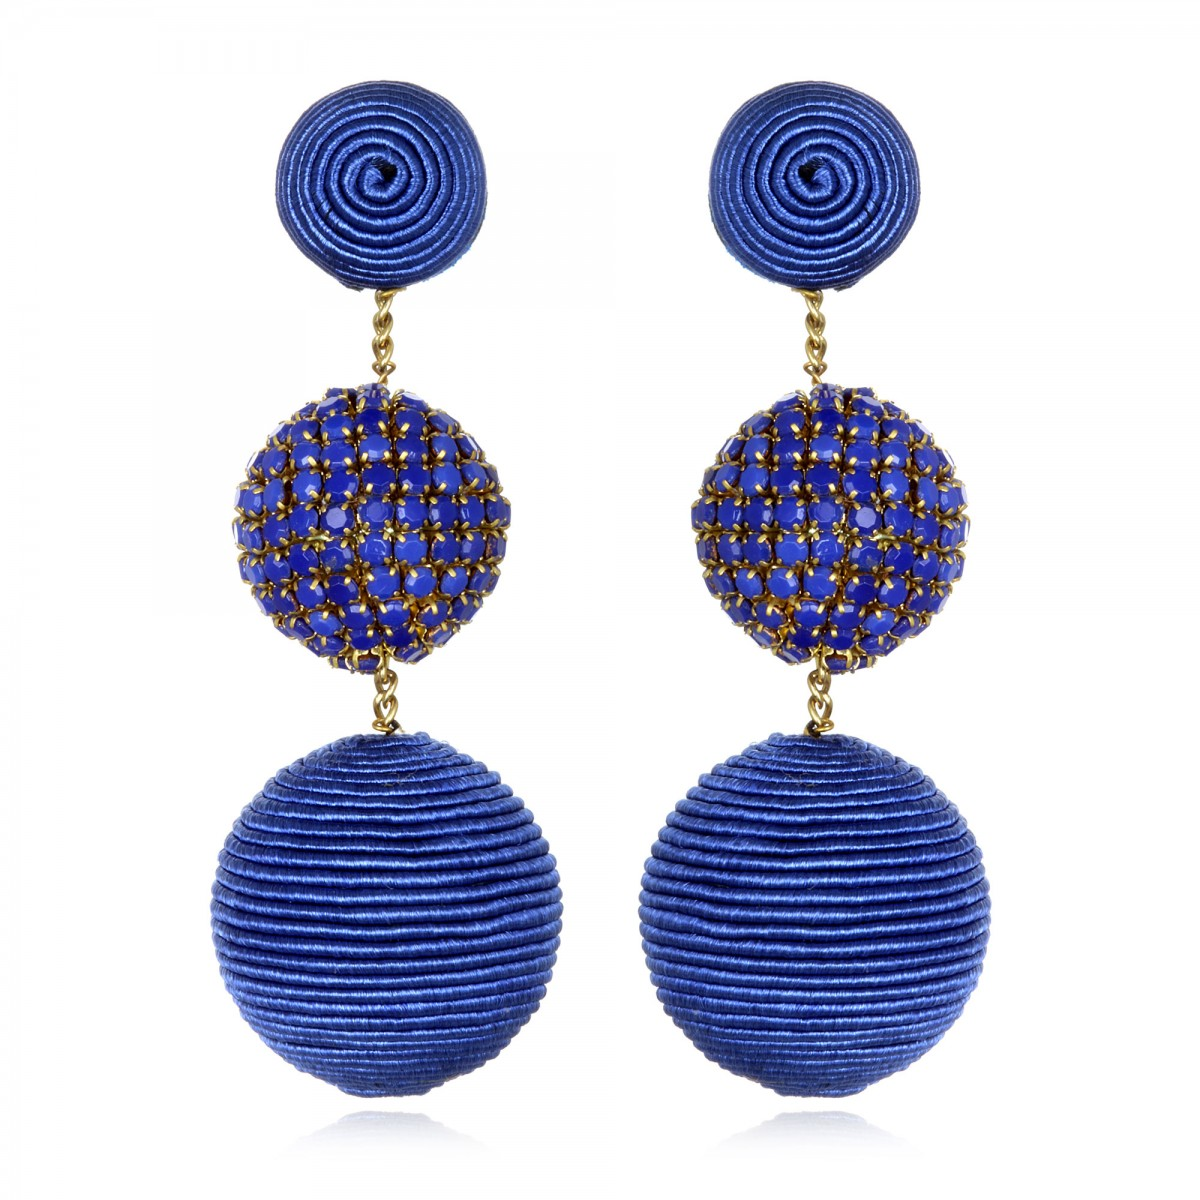 Blue Beaded Gumball Earrings by SUZANNA DAI